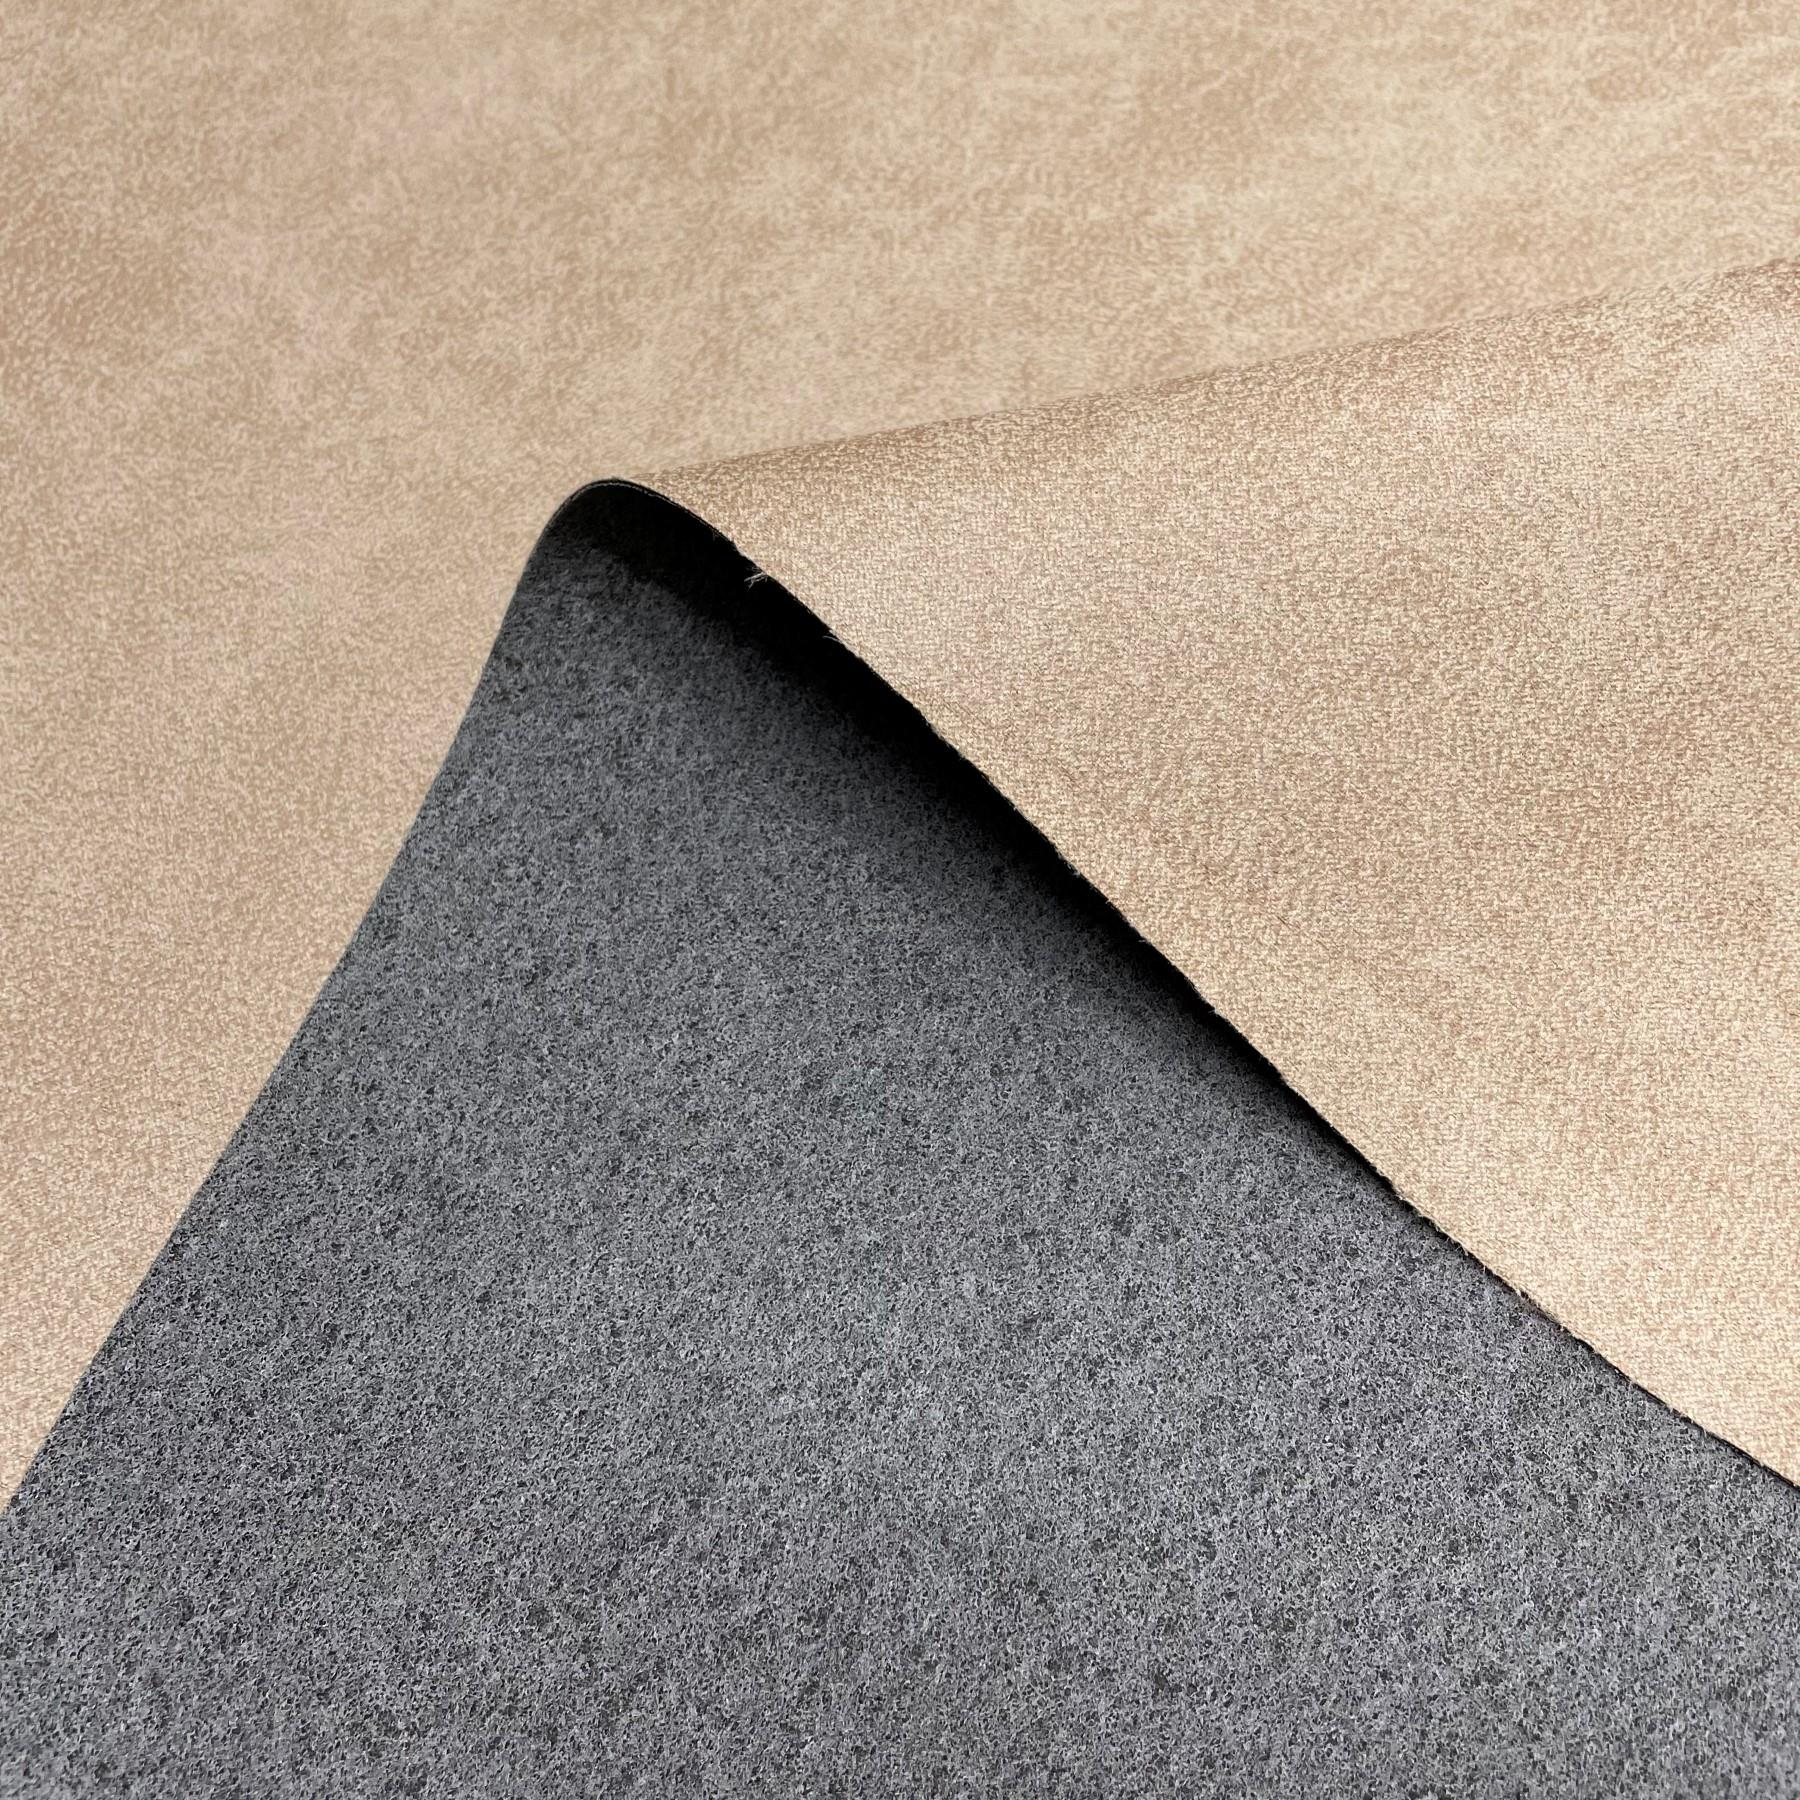 thumbnail 4 - AGED BROWN DISTRESSED ANTIQUED SUEDE FAUX LEATHER LEATHERETTE UPHOLSTERY FABRIC